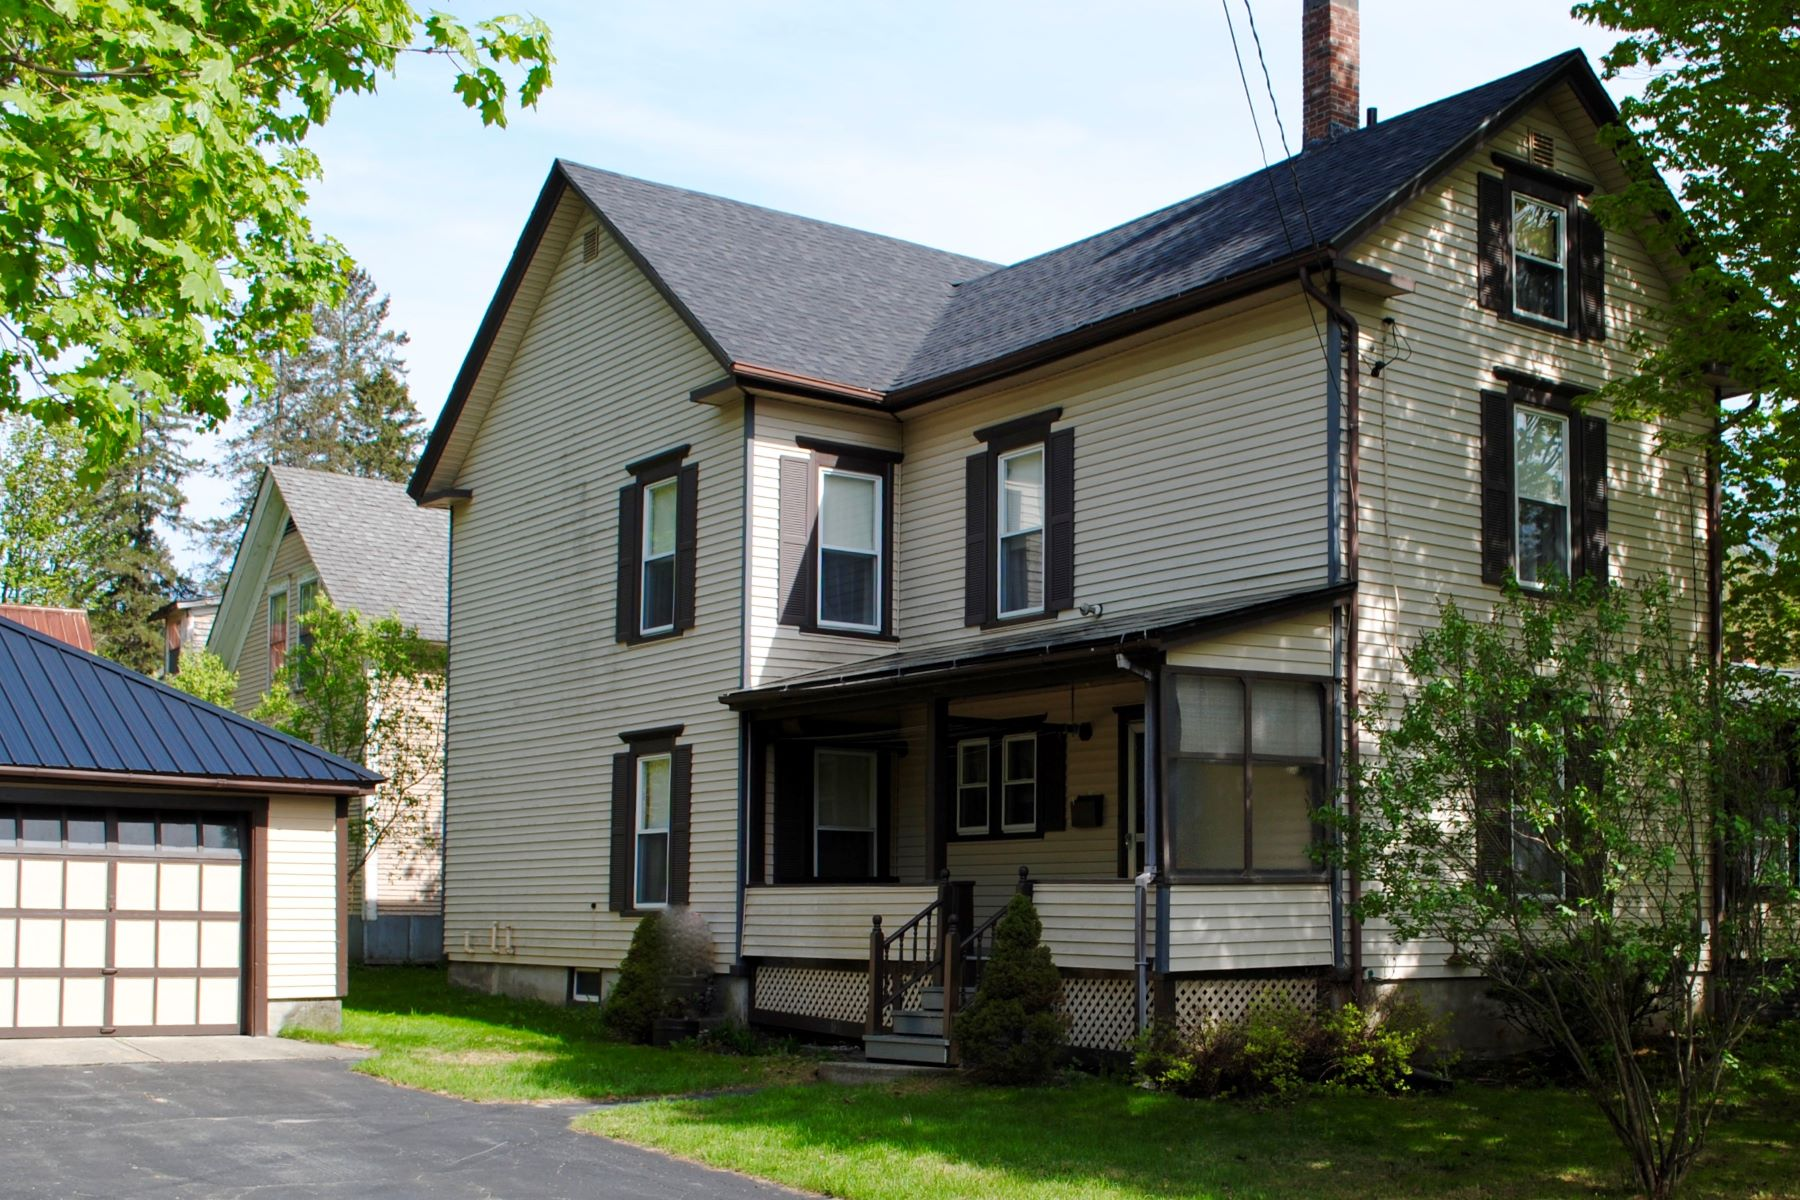 Single Family Homes for Sale at 10 Duke Street, St. Johnsbury 10 Duke St St. Johnsbury, Vermont 05819 United States